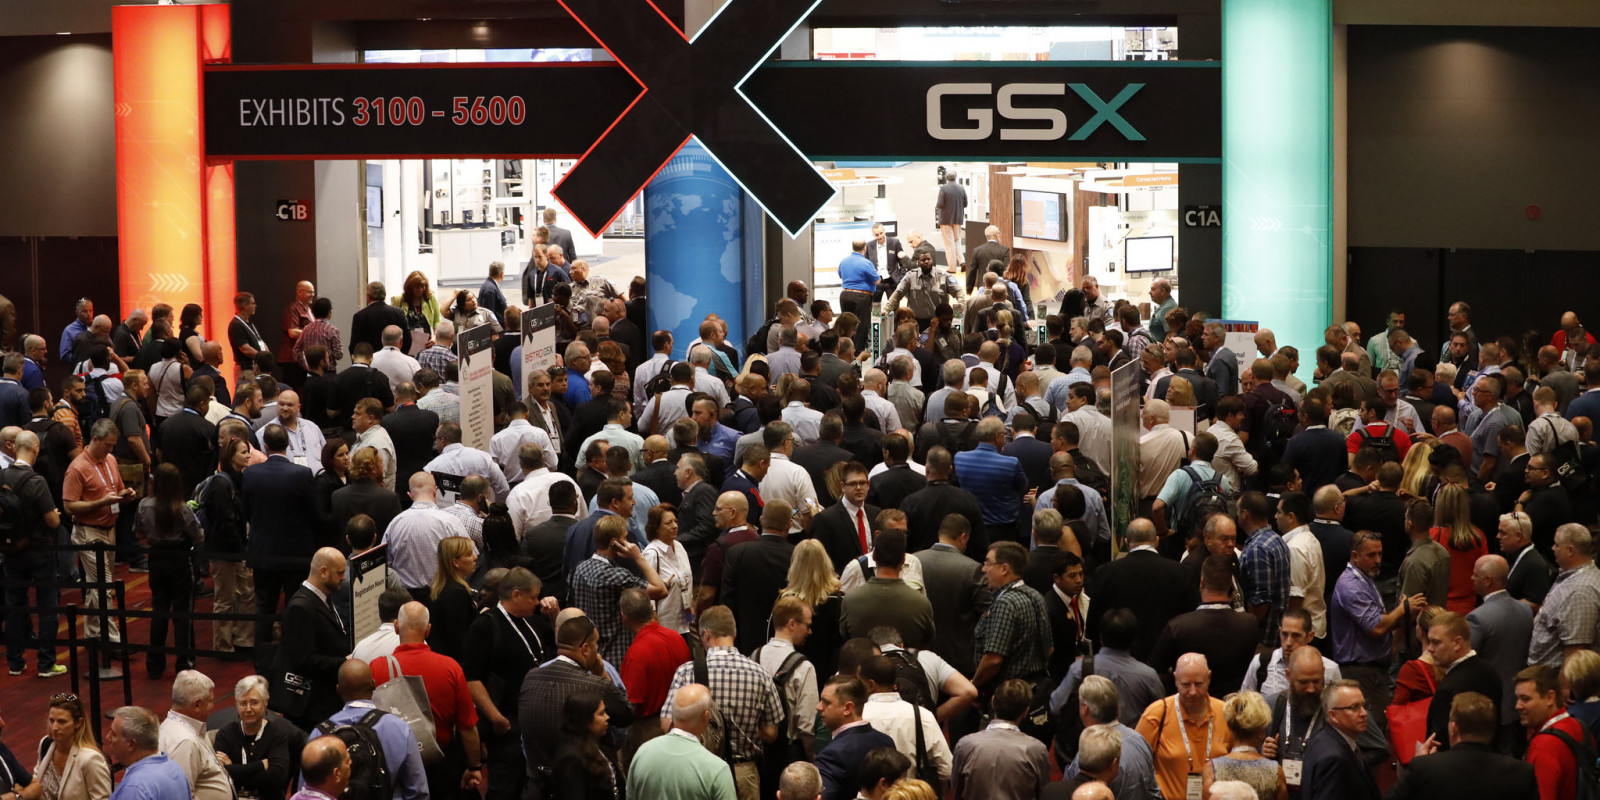 ASIS GSX entrance to exhibits